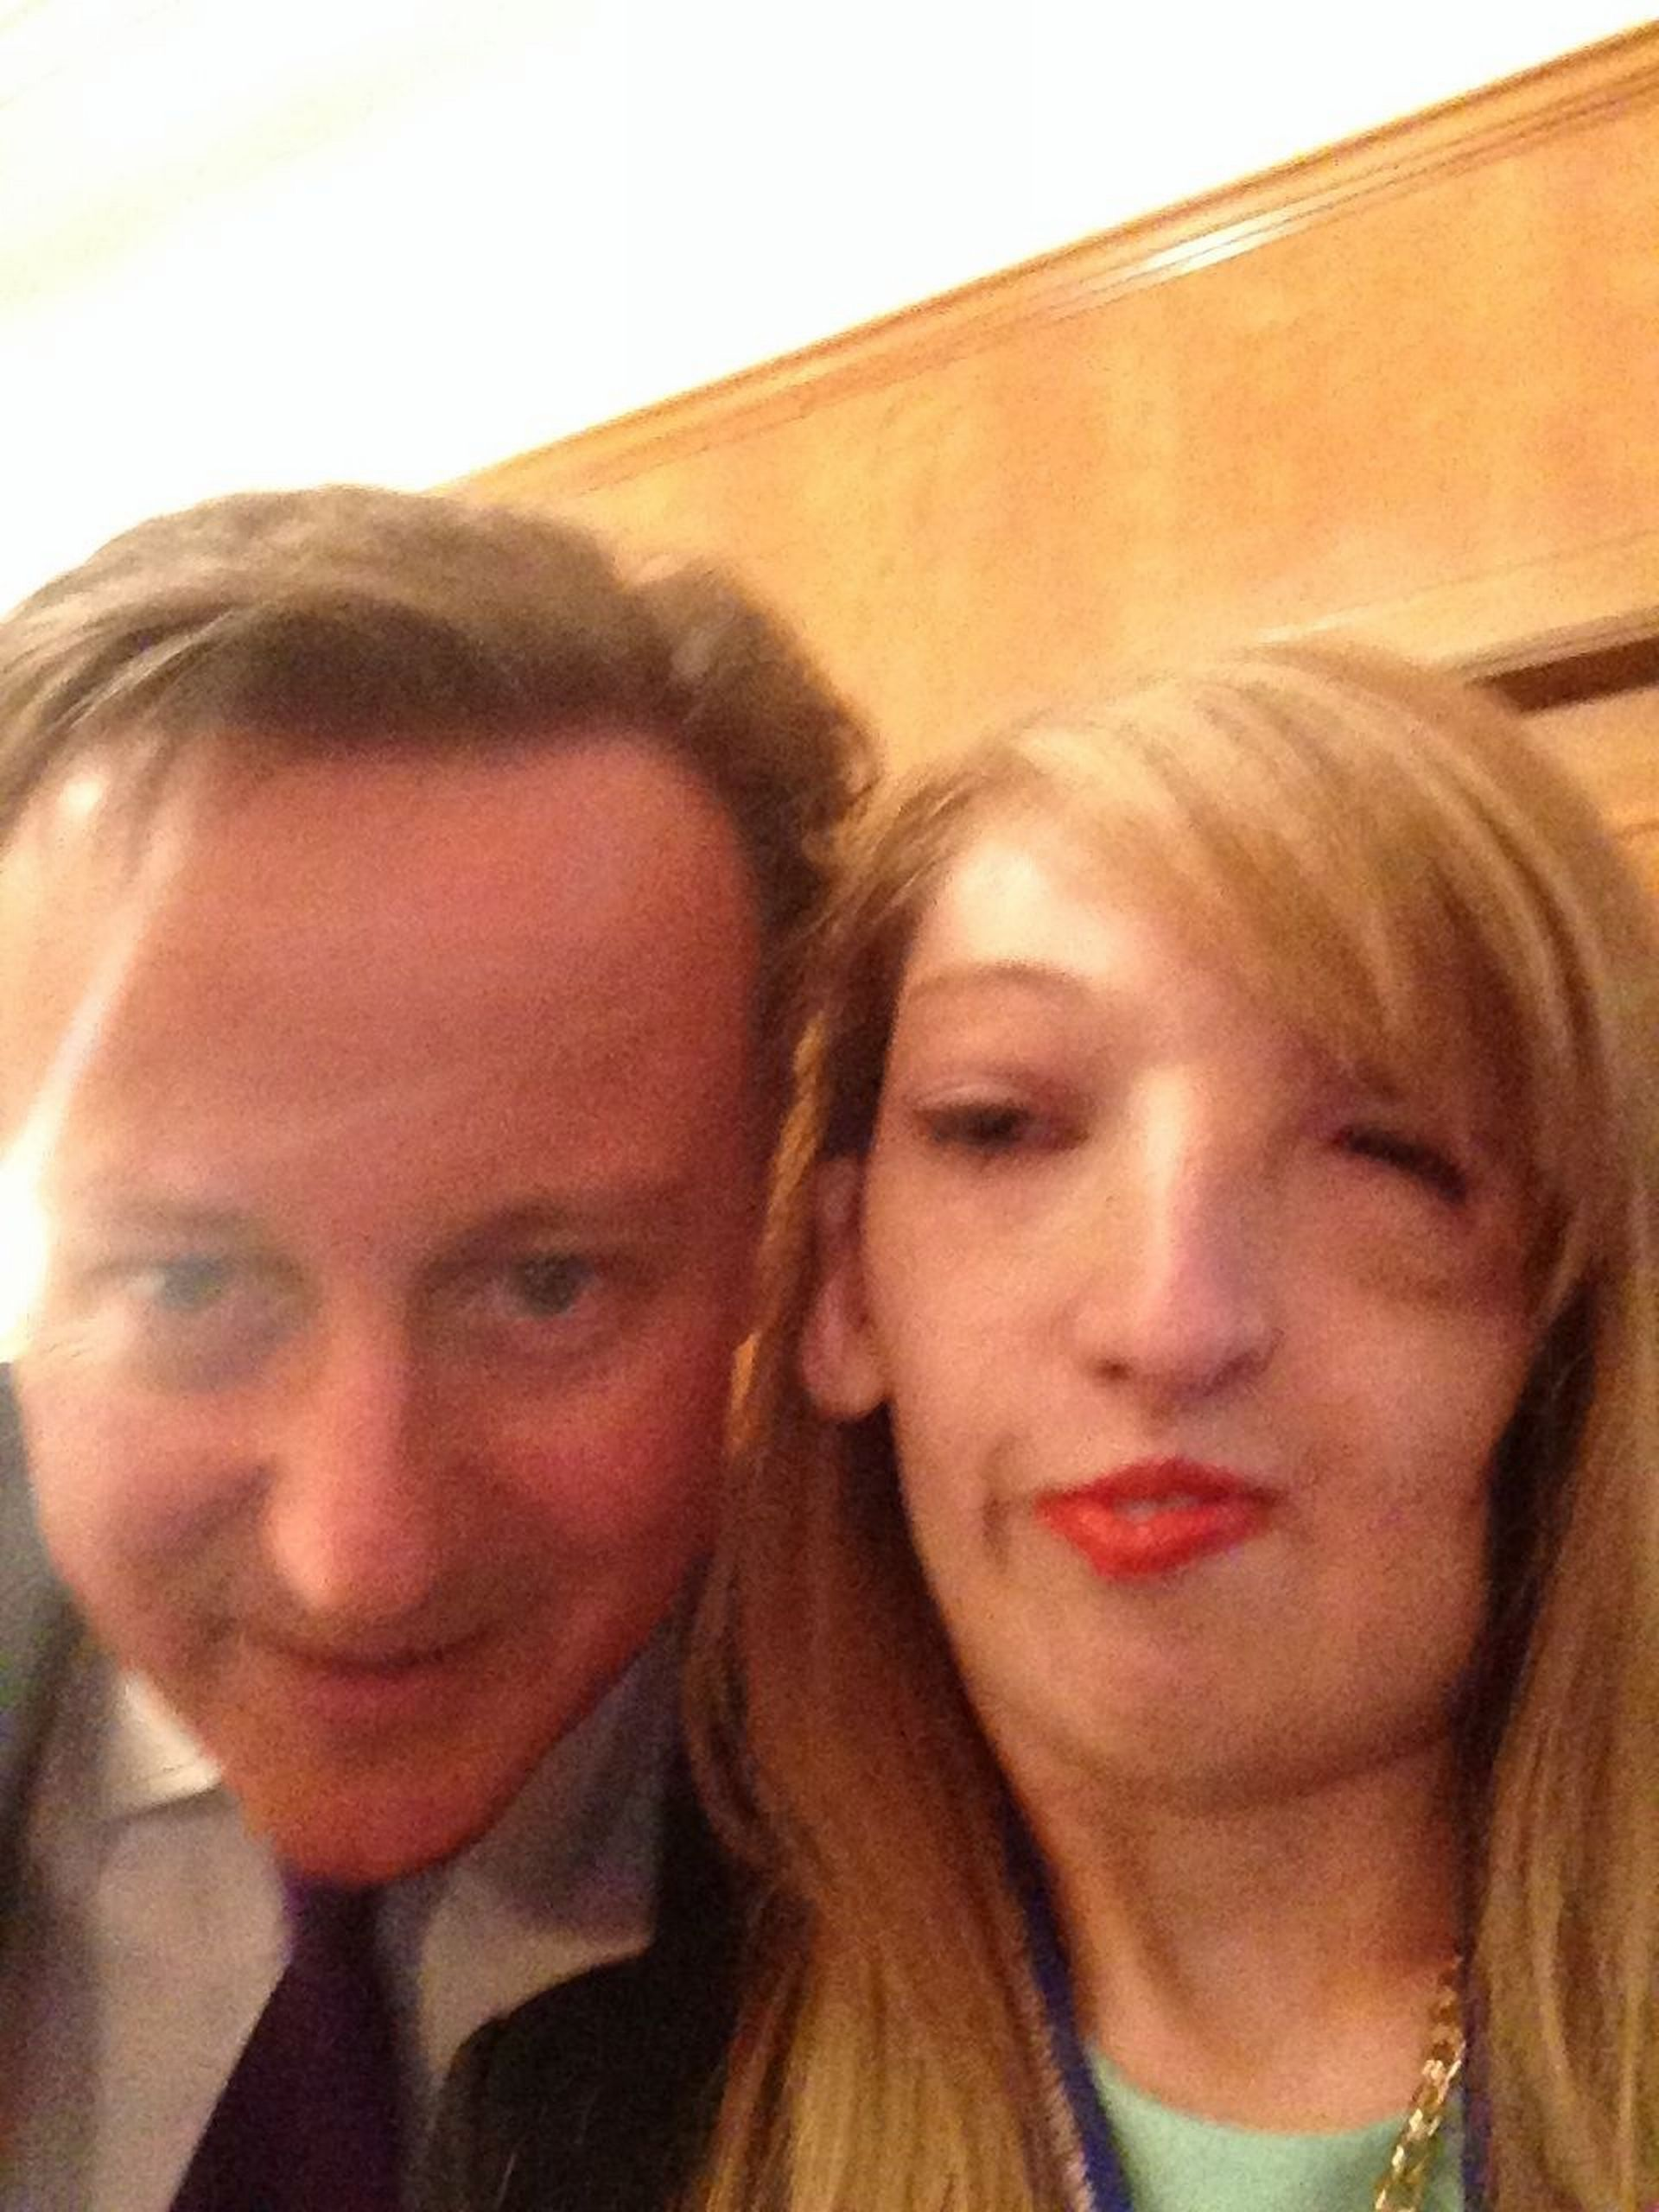 Weymouth woman bags 'selfie' with PM David Cameron